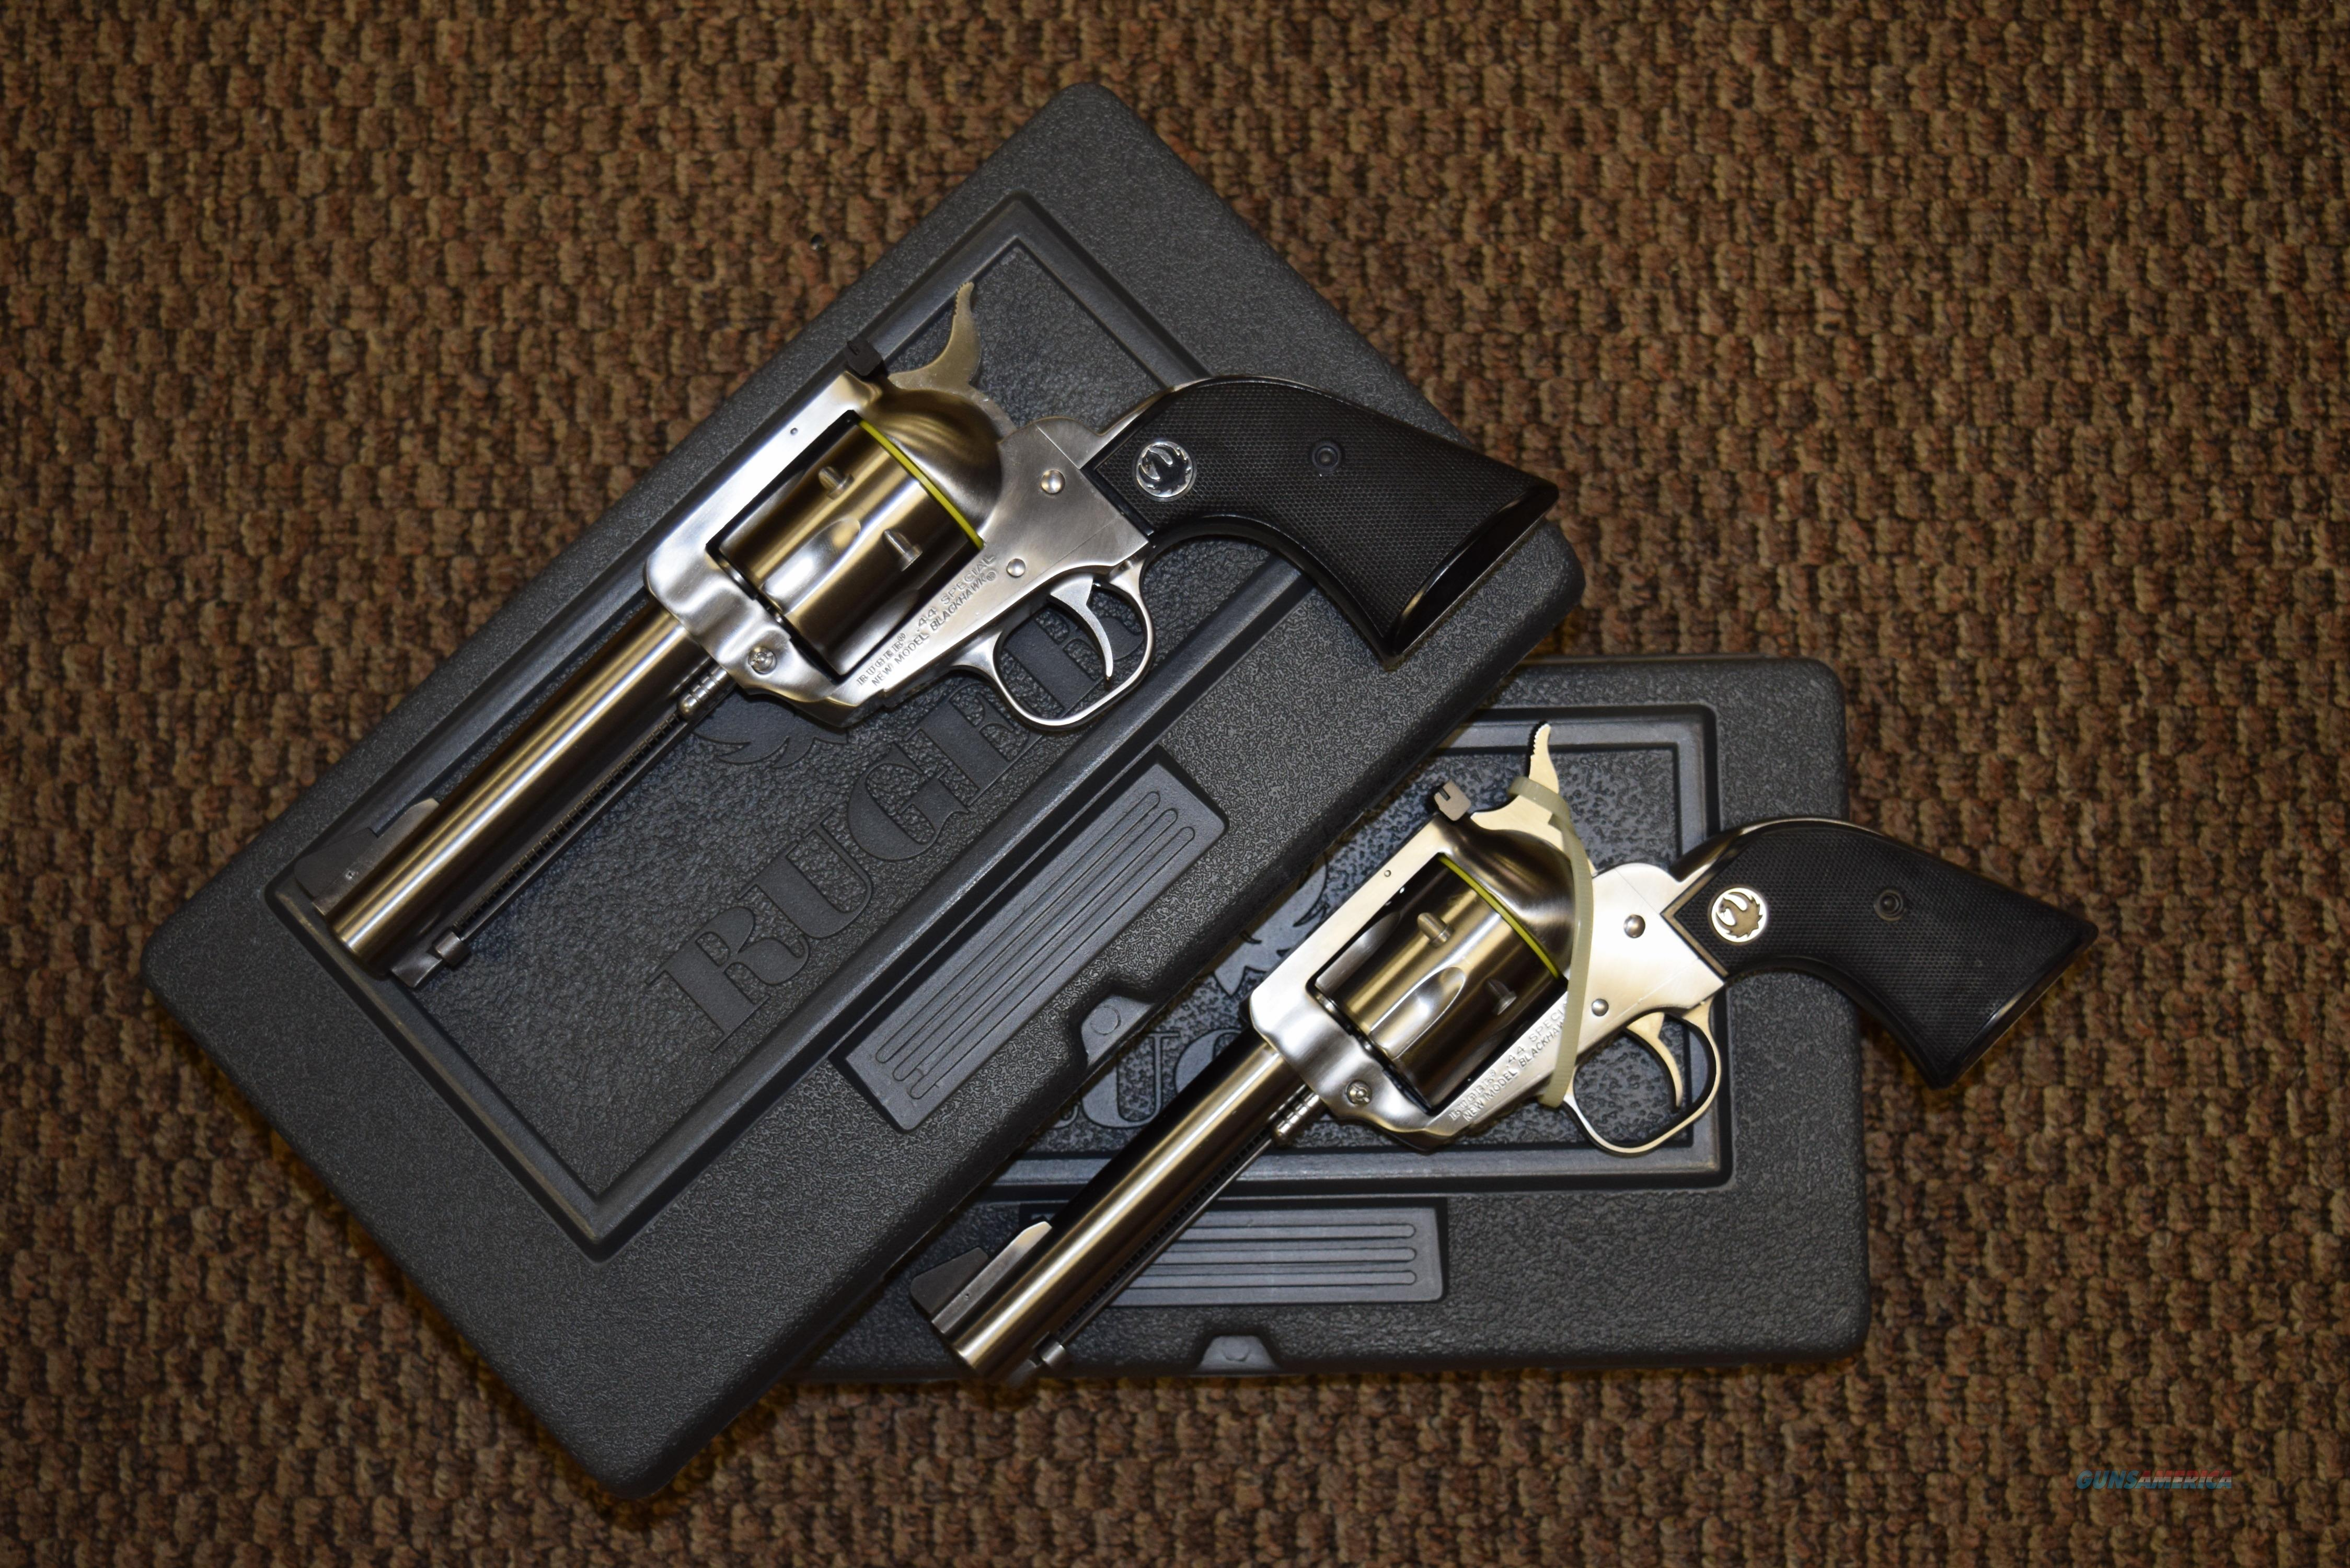 RARE RUGER COLLECTABLE PAIR OF STAINLESS BLACKHAWKS IN .44 SPECIAL CONSECUTIVE SERIAL NUMBERS - 43 & 44 -- REDUCED!!  Guns > Pistols > Ruger Single Action Revolvers > Cowboy Action